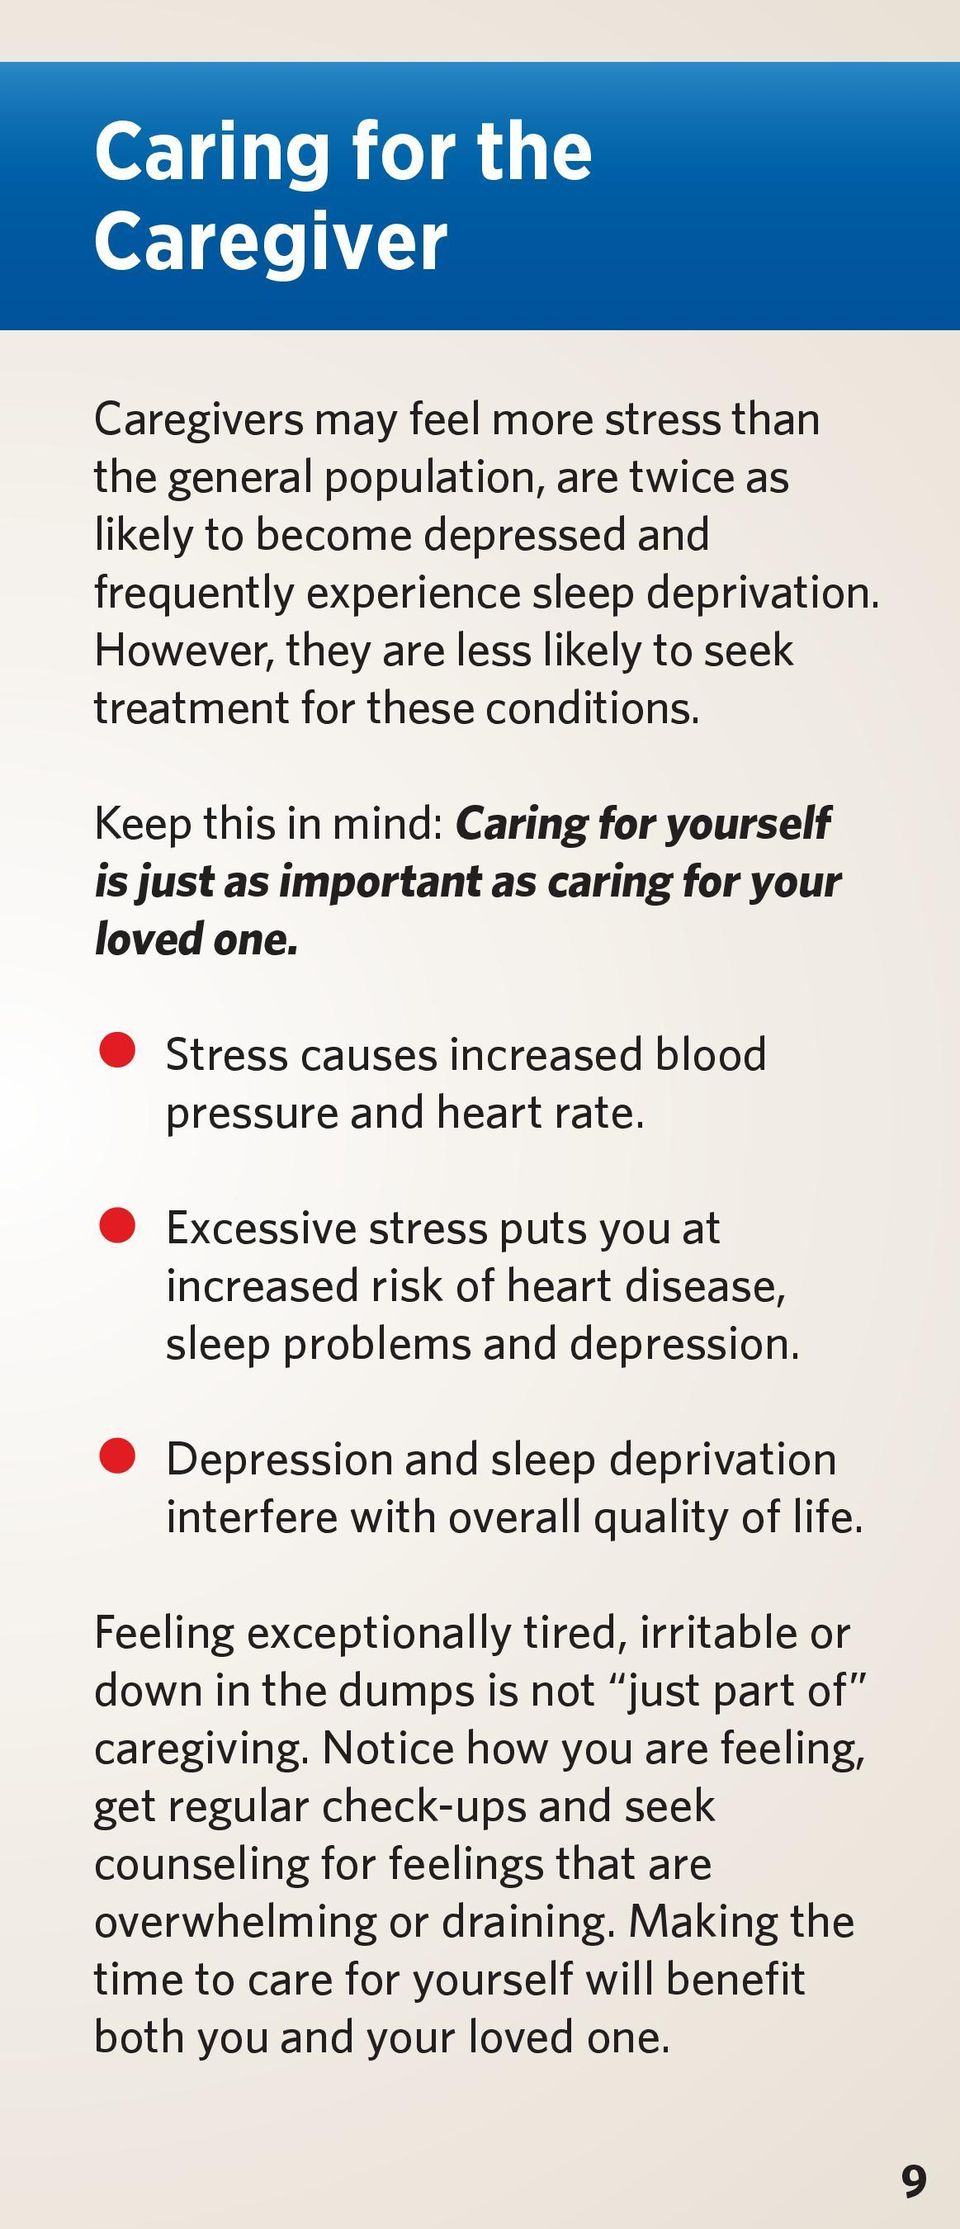 Stress causes increased blood pressure and heart rate. Excessive stress puts you at increased risk of heart disease, sleep problems and depression.